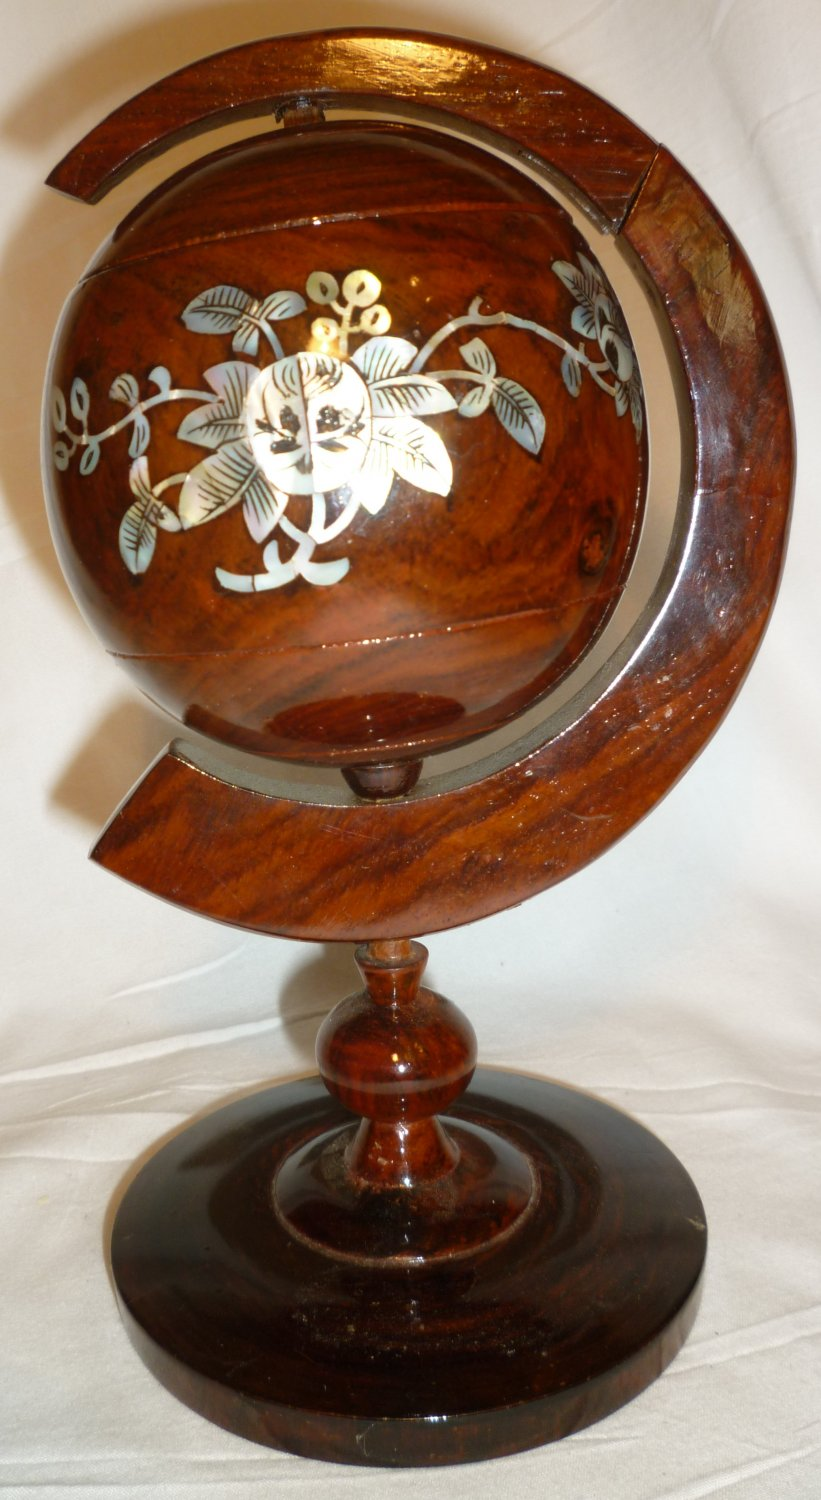 GORGEOUS UNIQUE WOOD CARVED W/MOTHER OF PEARL INLAYS GLOBE TRINKET BOX ASHTRAY